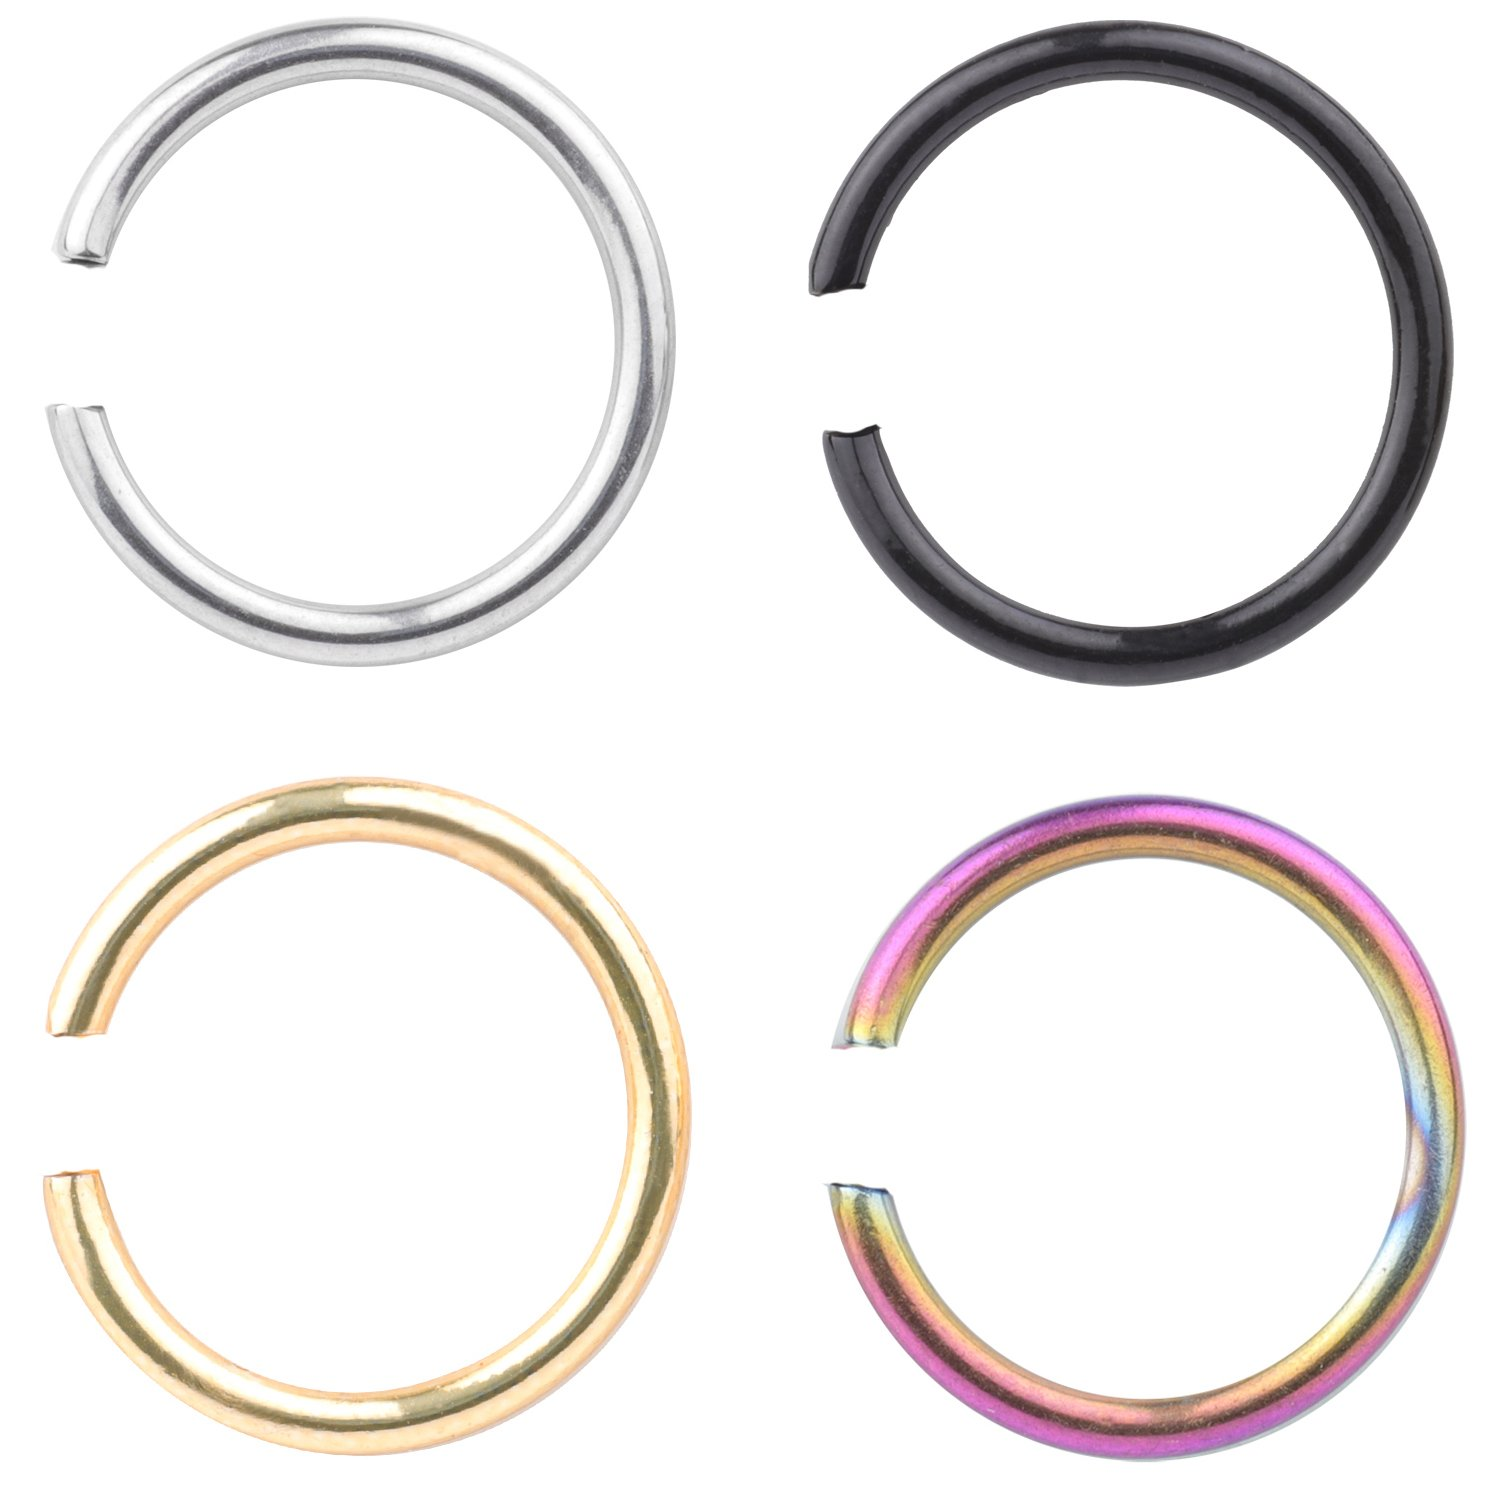 16G Surgical Stainless Nose Ring Hoop Cartilage Hoop Body Jewelry Piercing for Ear Cartilage Lip Nose 8mm